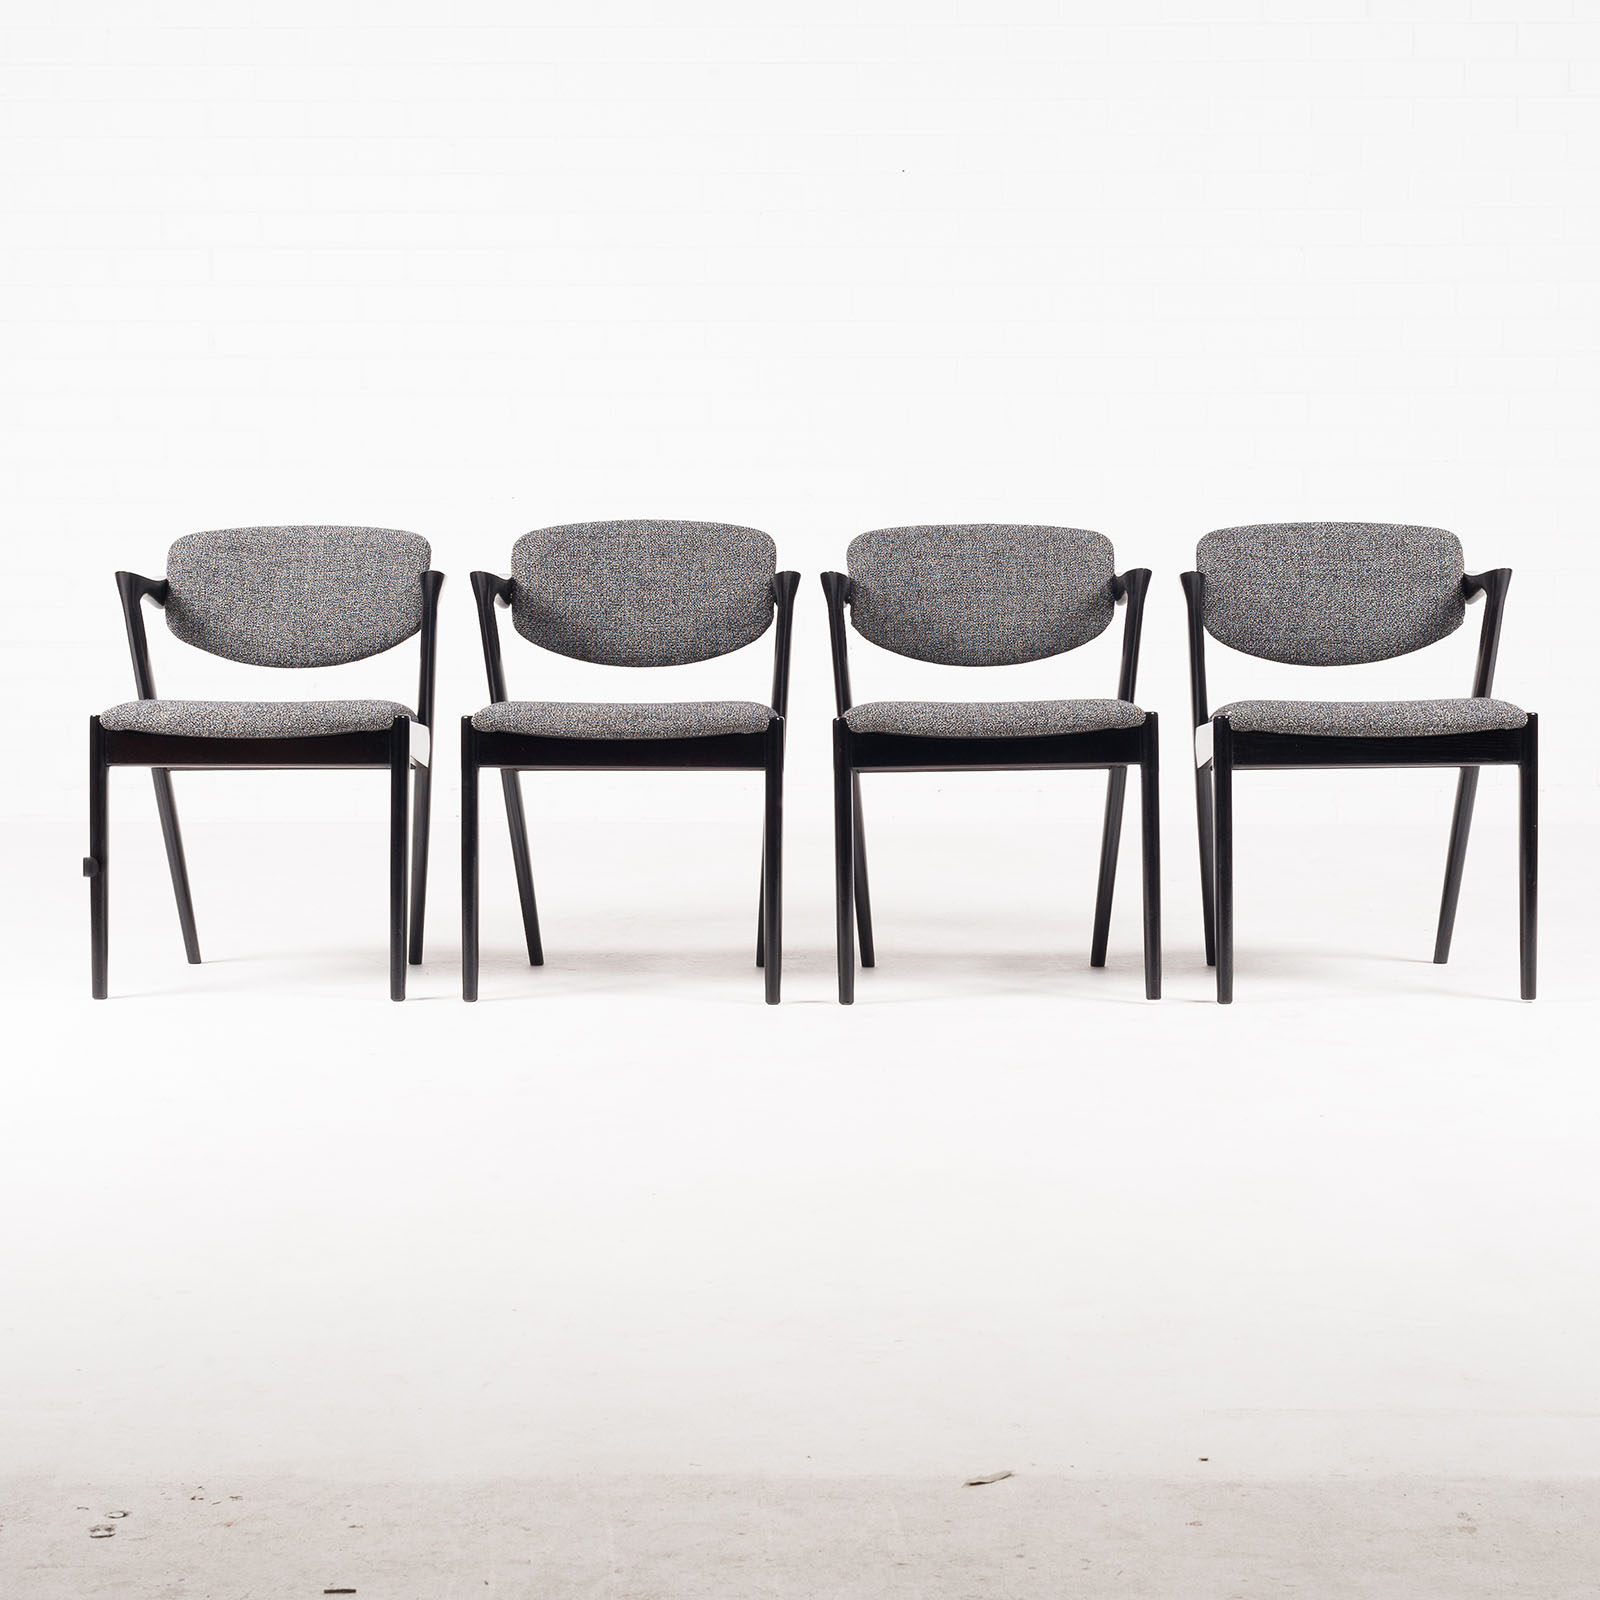 Set 4 Model 42 Dining Chairs By Kai Kristiansen In Stained Oak And New Kvadrat Upholstery 1959 Denmark 05